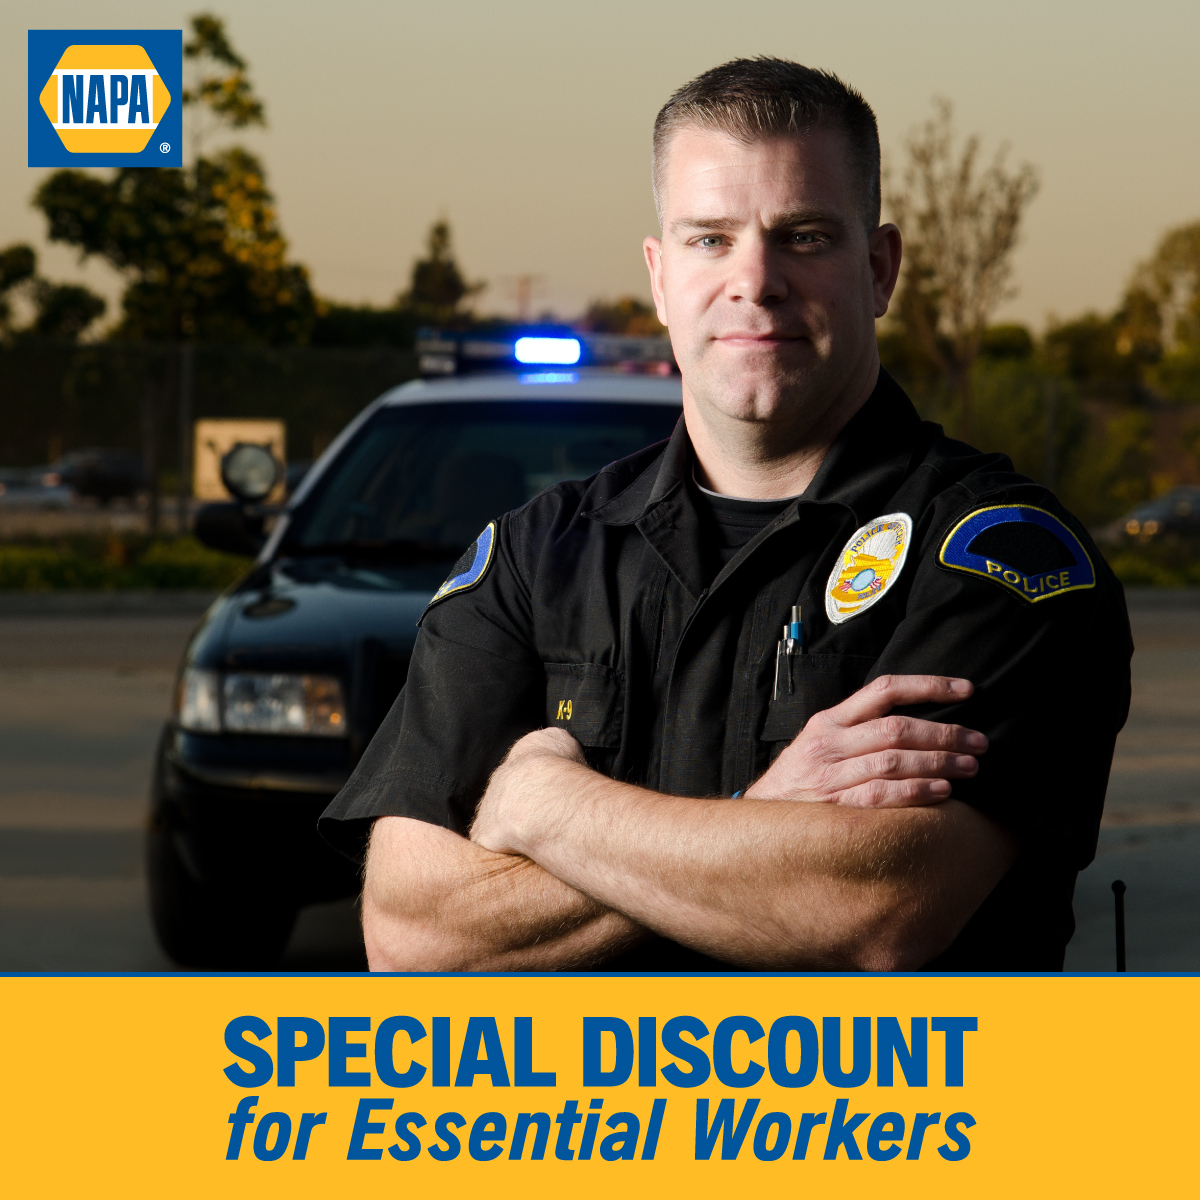 Discounts for Essential Workers